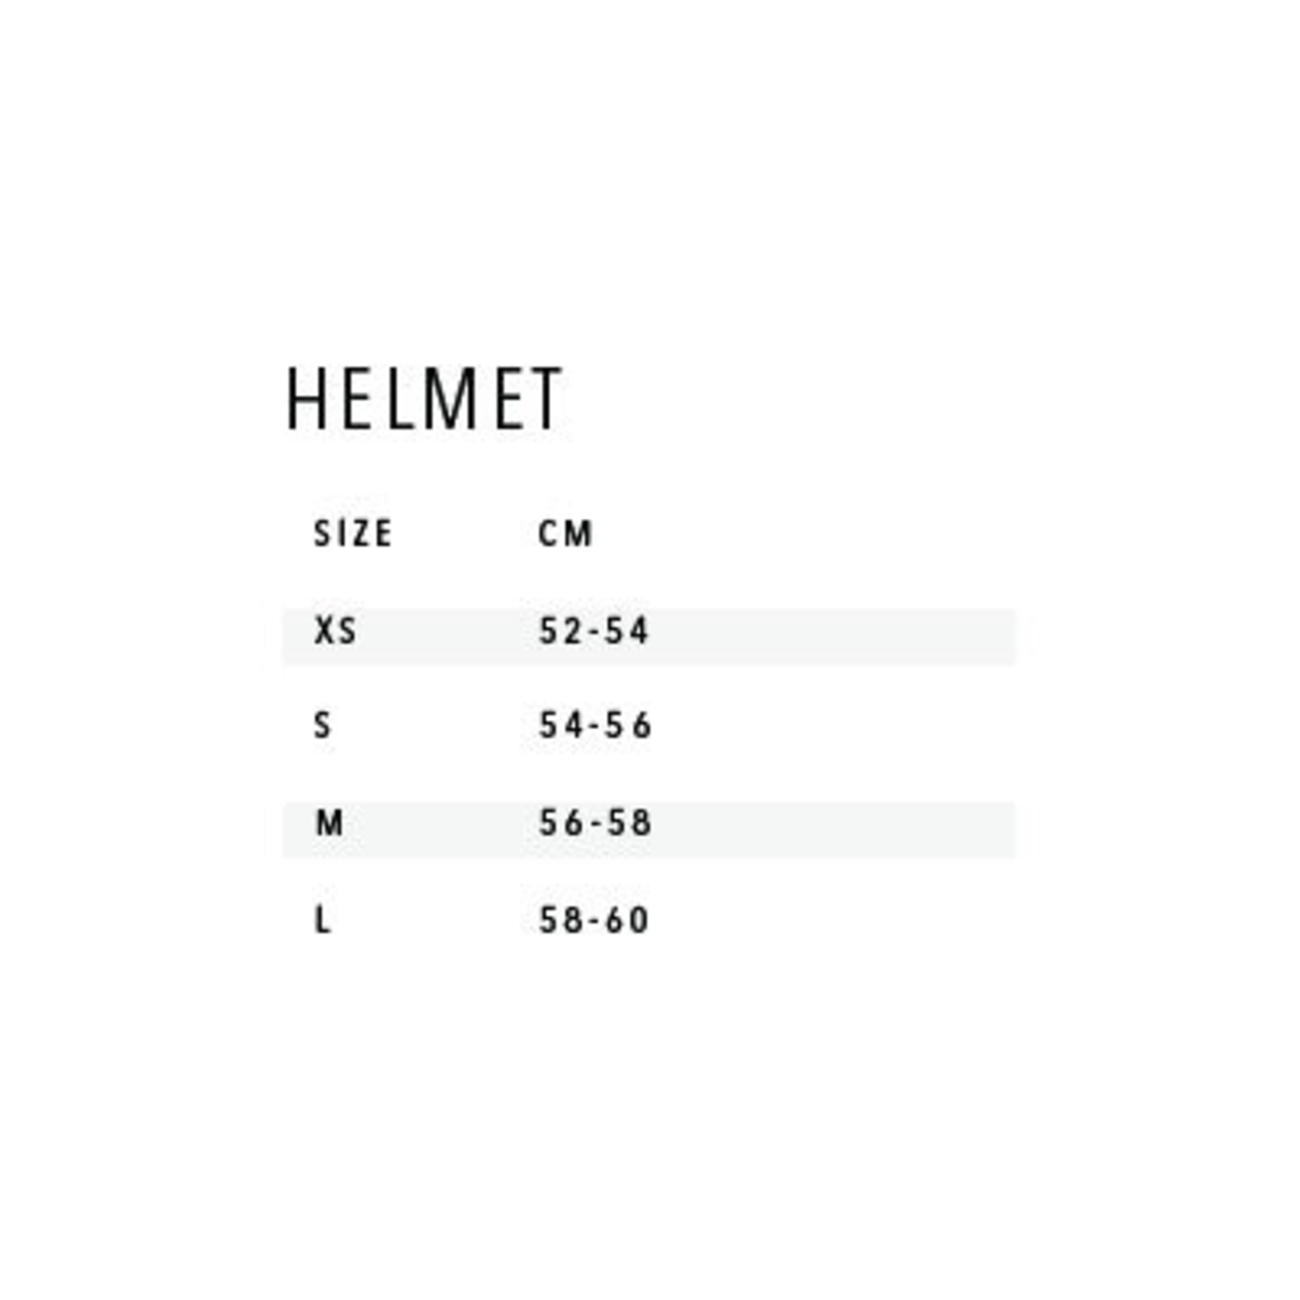 ULTIMATE HELMET